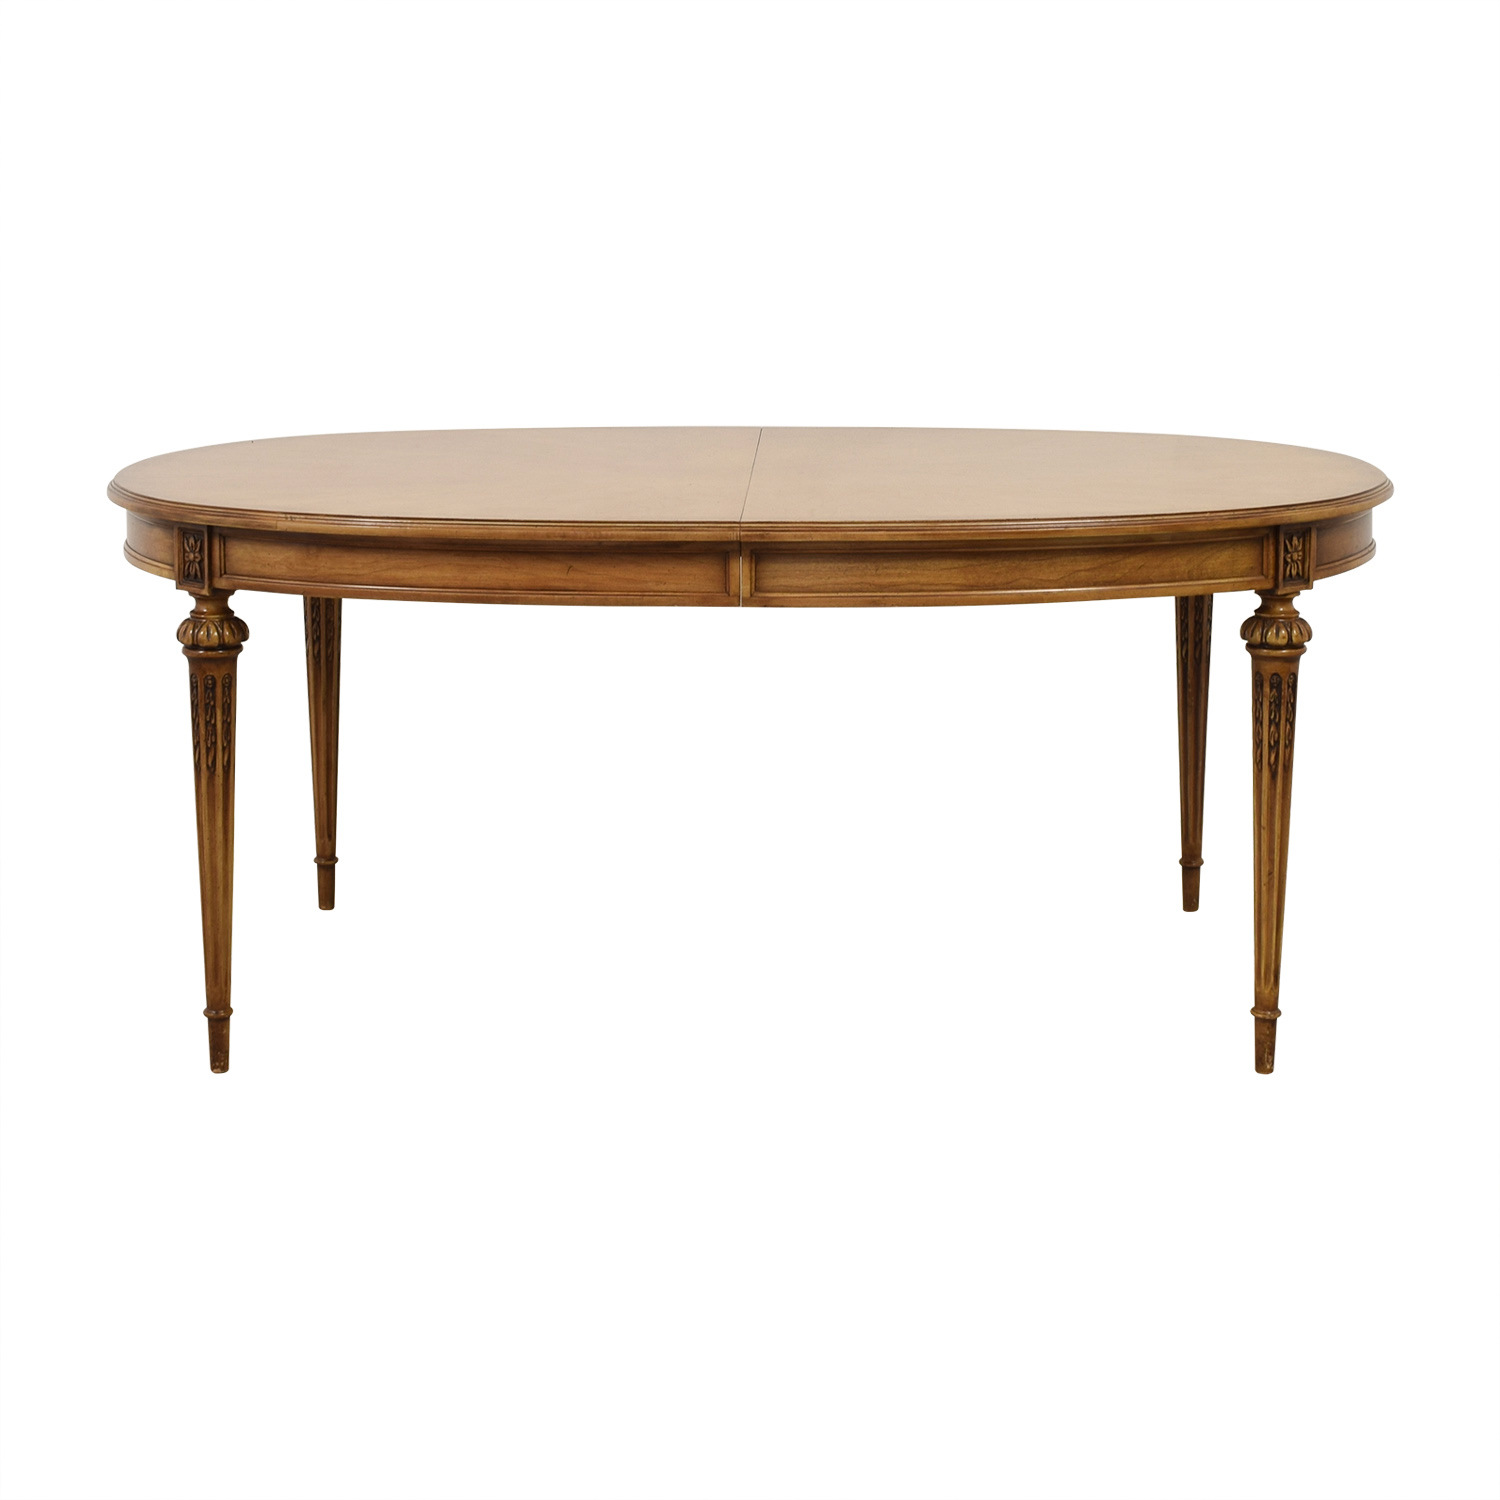 62 Off Oval Wood Dining Table With Protective Pad And Two Leaves Tables